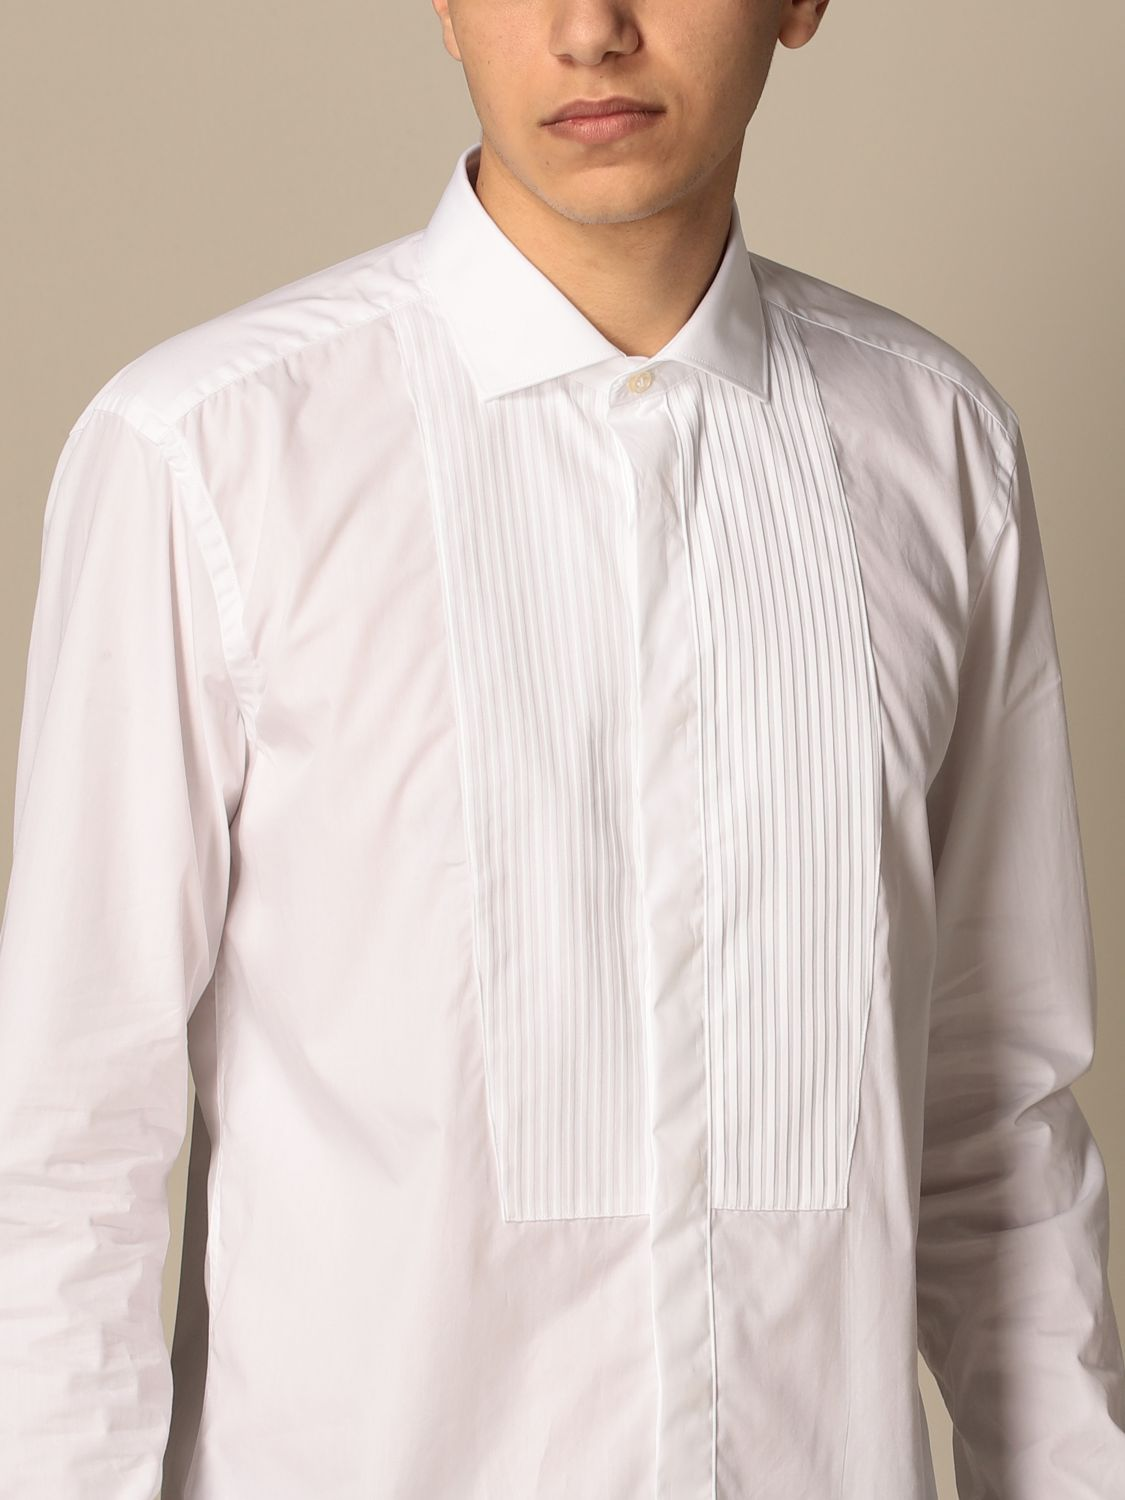 Chemise Brian Dales Chemises: Chemise homme Brian Dales Camicie blanc 4